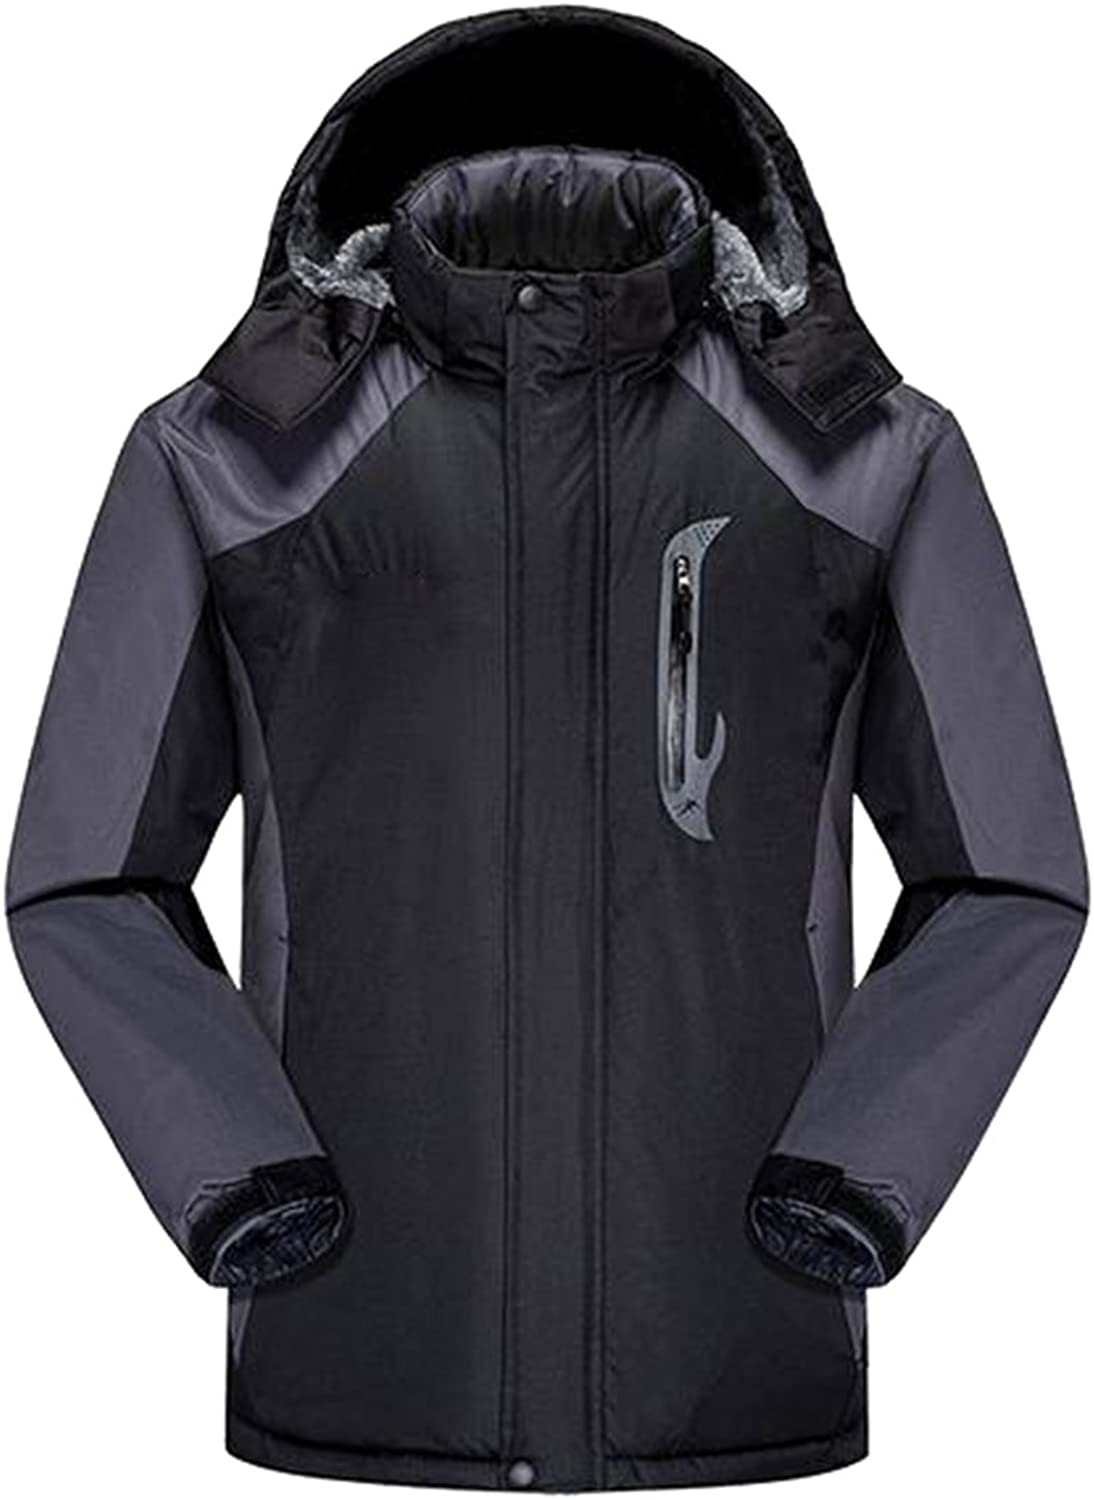 ARRIVE GUIDE Men's Front Zip Ski Jacket Fleece Waterproof Hooded Outwear